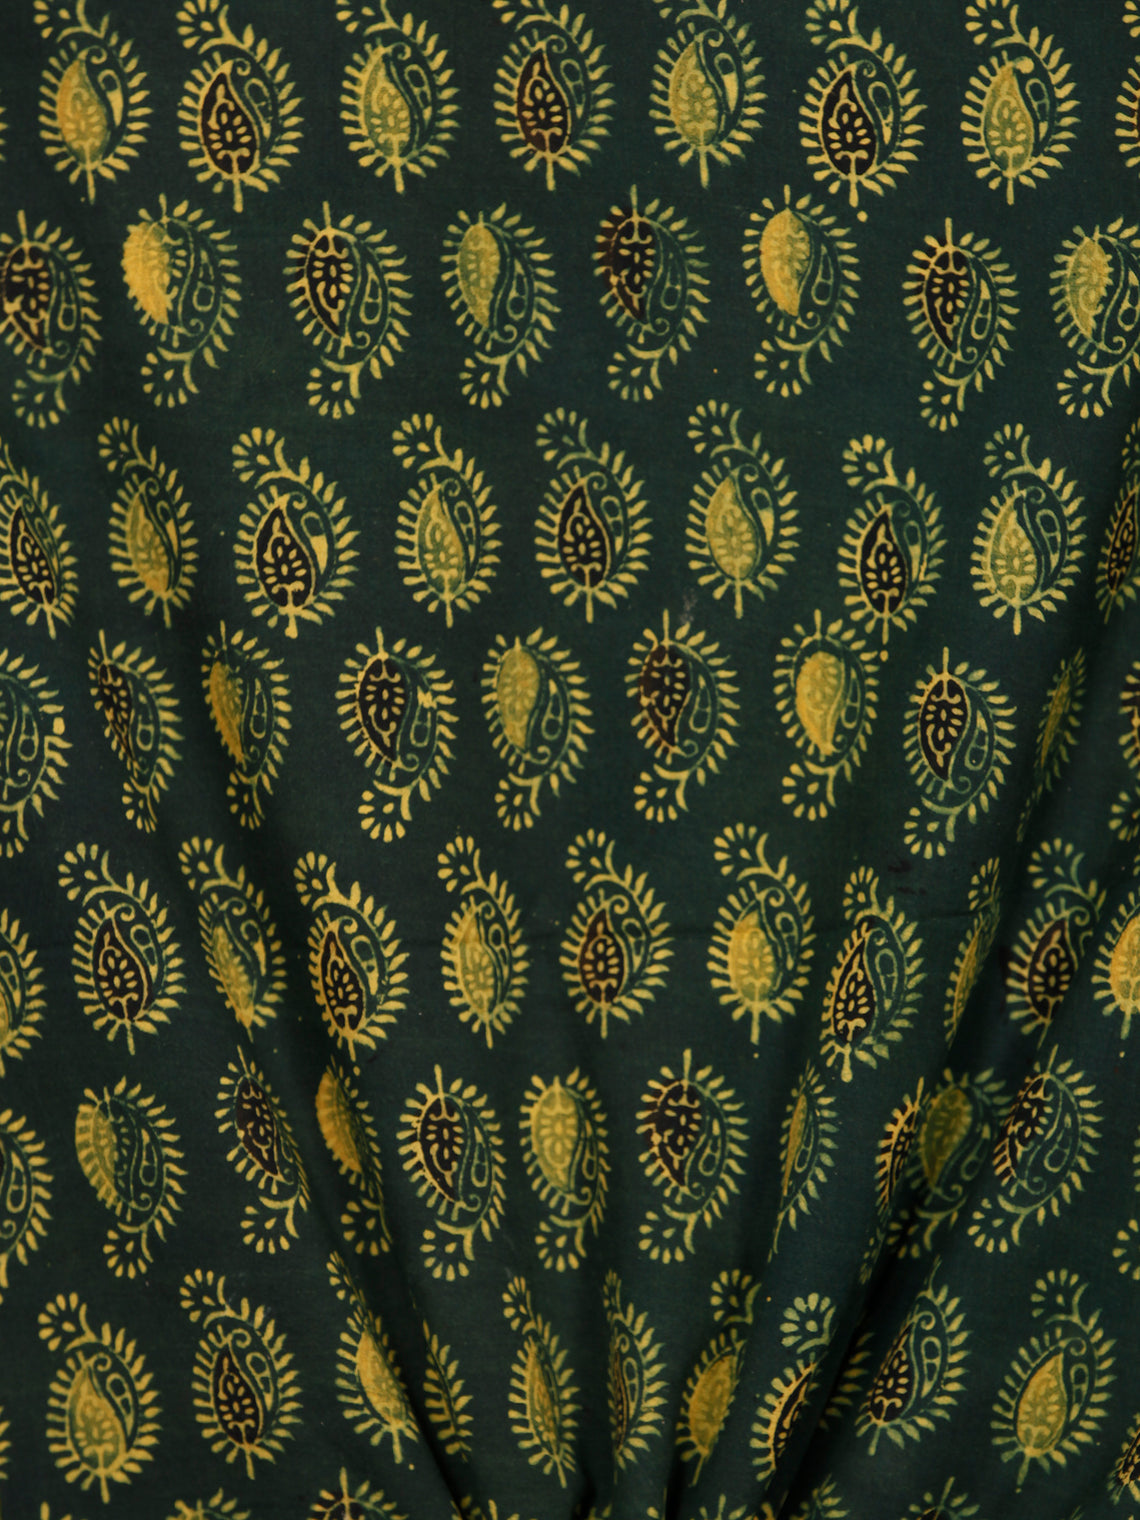 Green Lime Black Ajrakh Hand Block Printed Cotton Fabric Per Meter - F003F1779